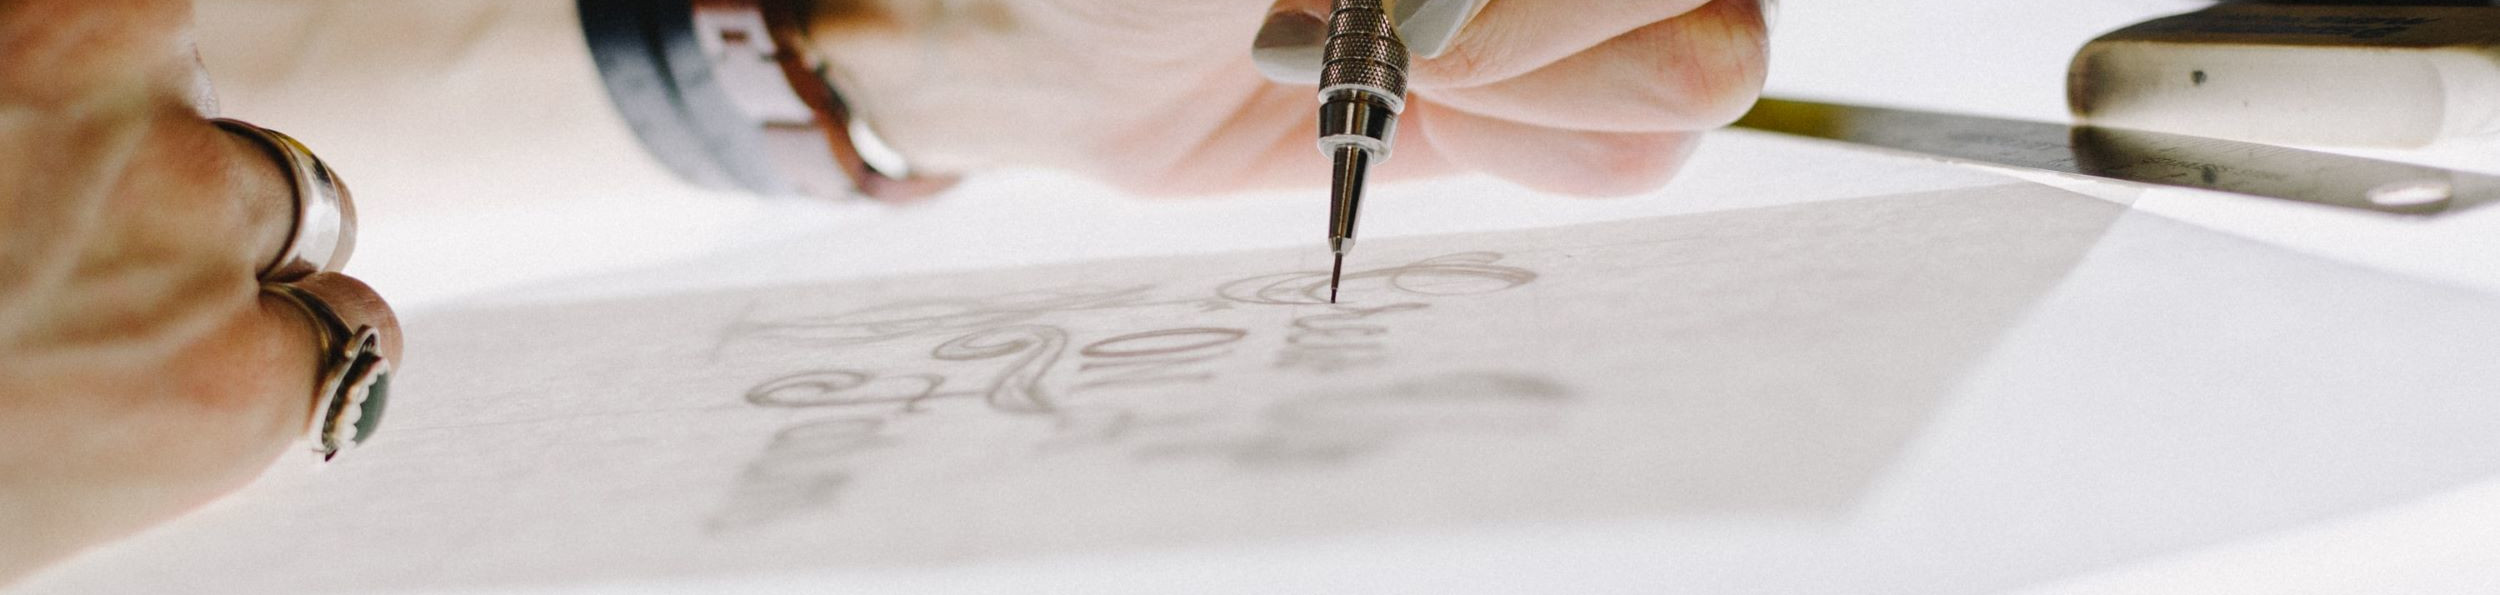 Close up of woman's hands doing a fine drawing.